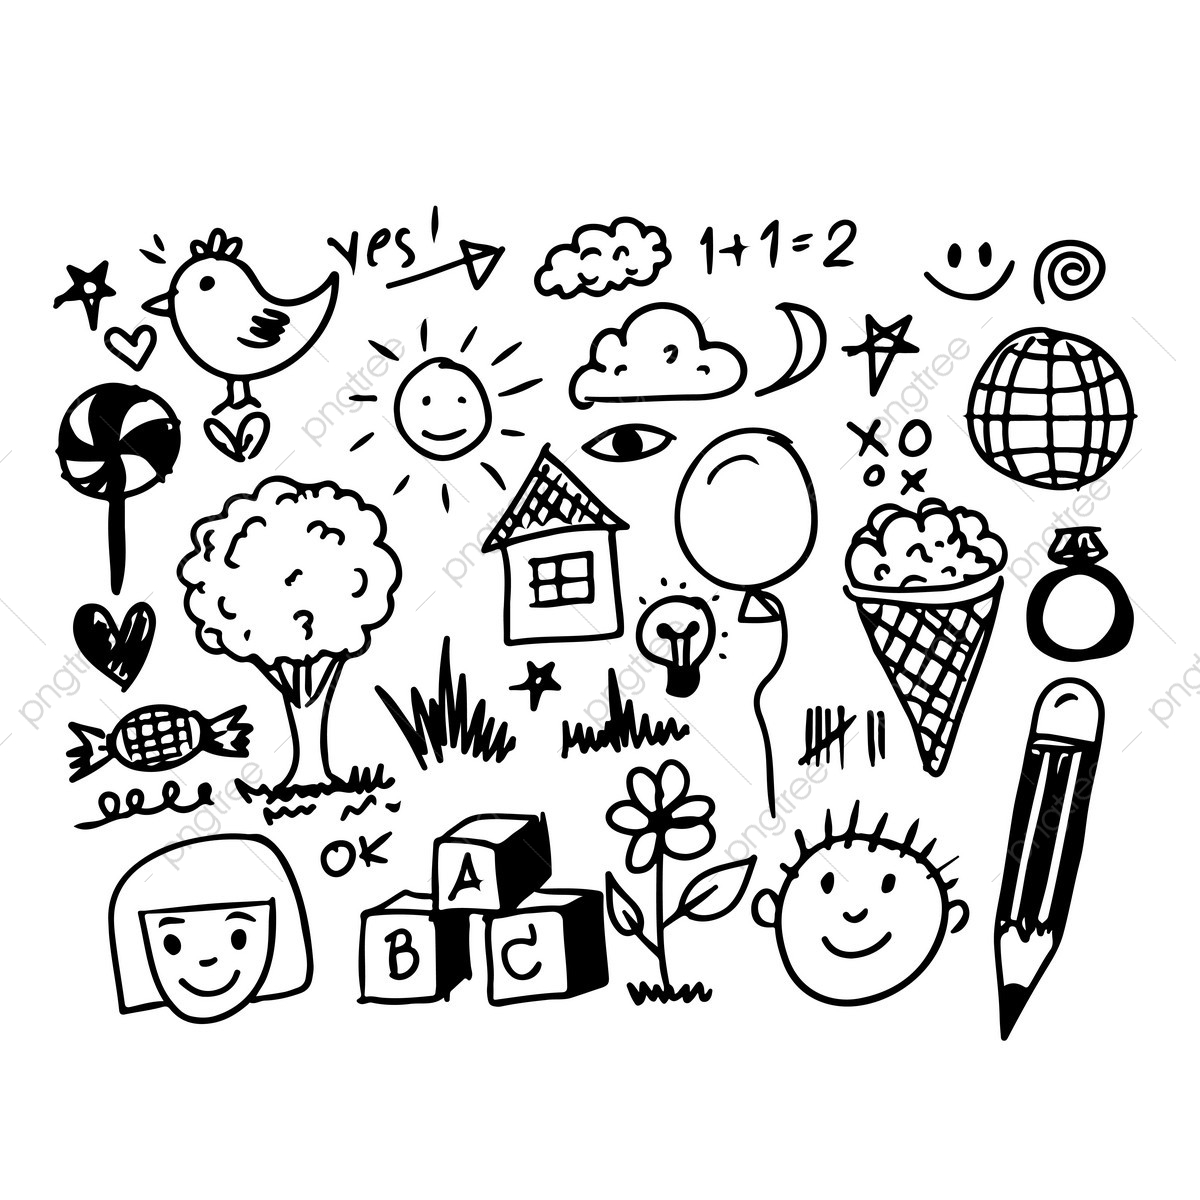 pngtree hand draw business doodles icon png image